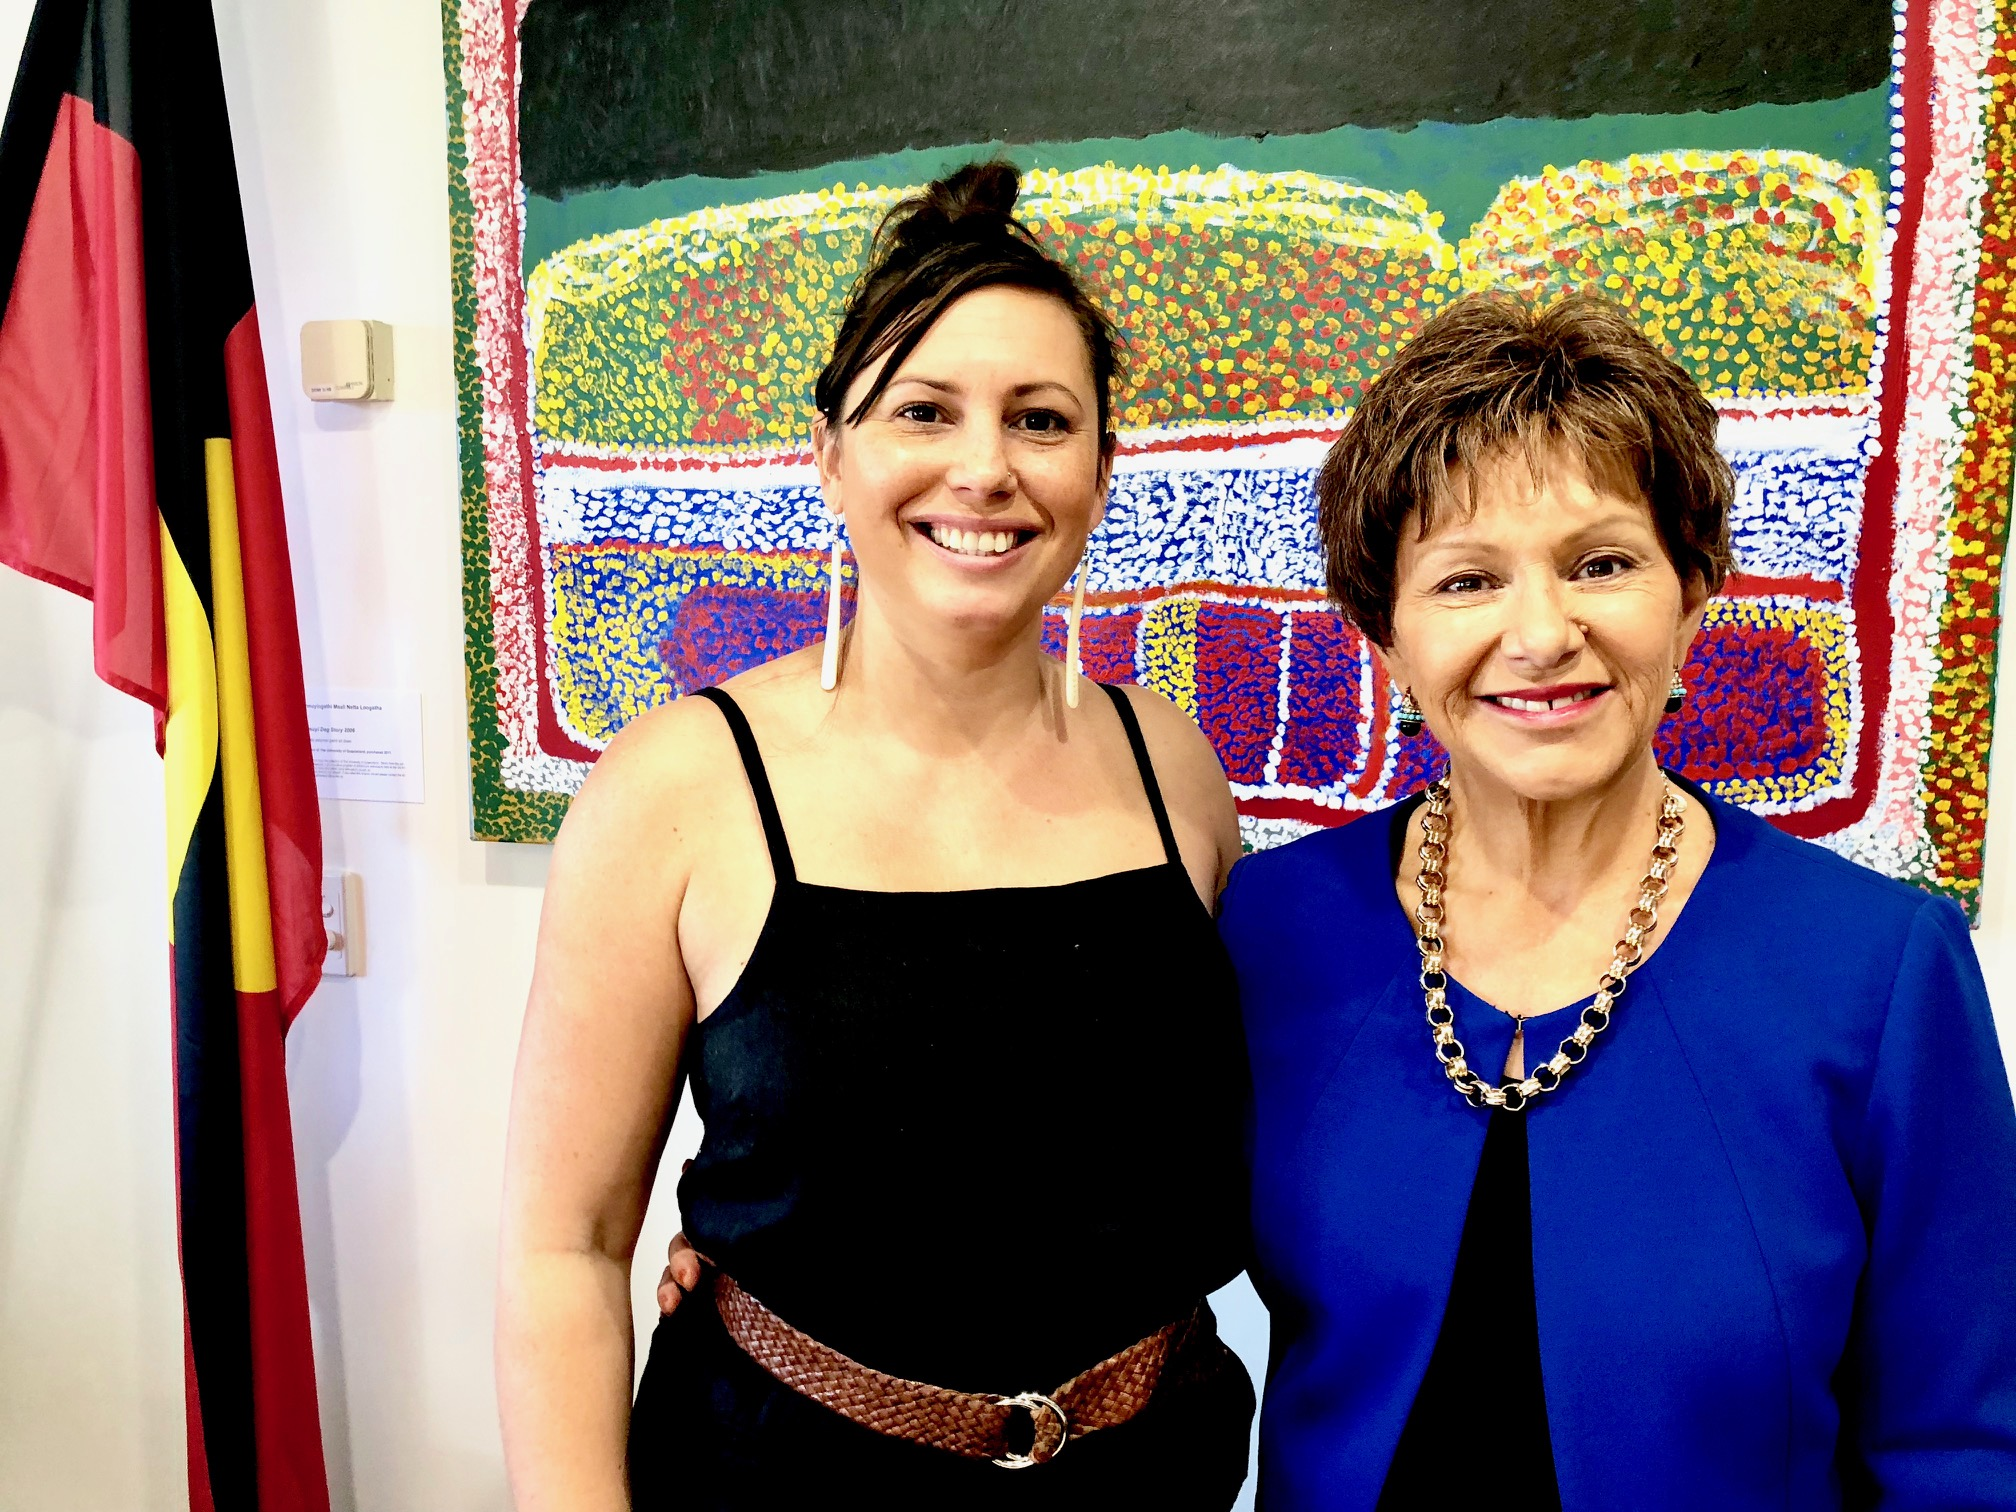 Presenting a long term vision for reform: Professor Bronwyn Fredericks (R) speaks with Summer May Finlay